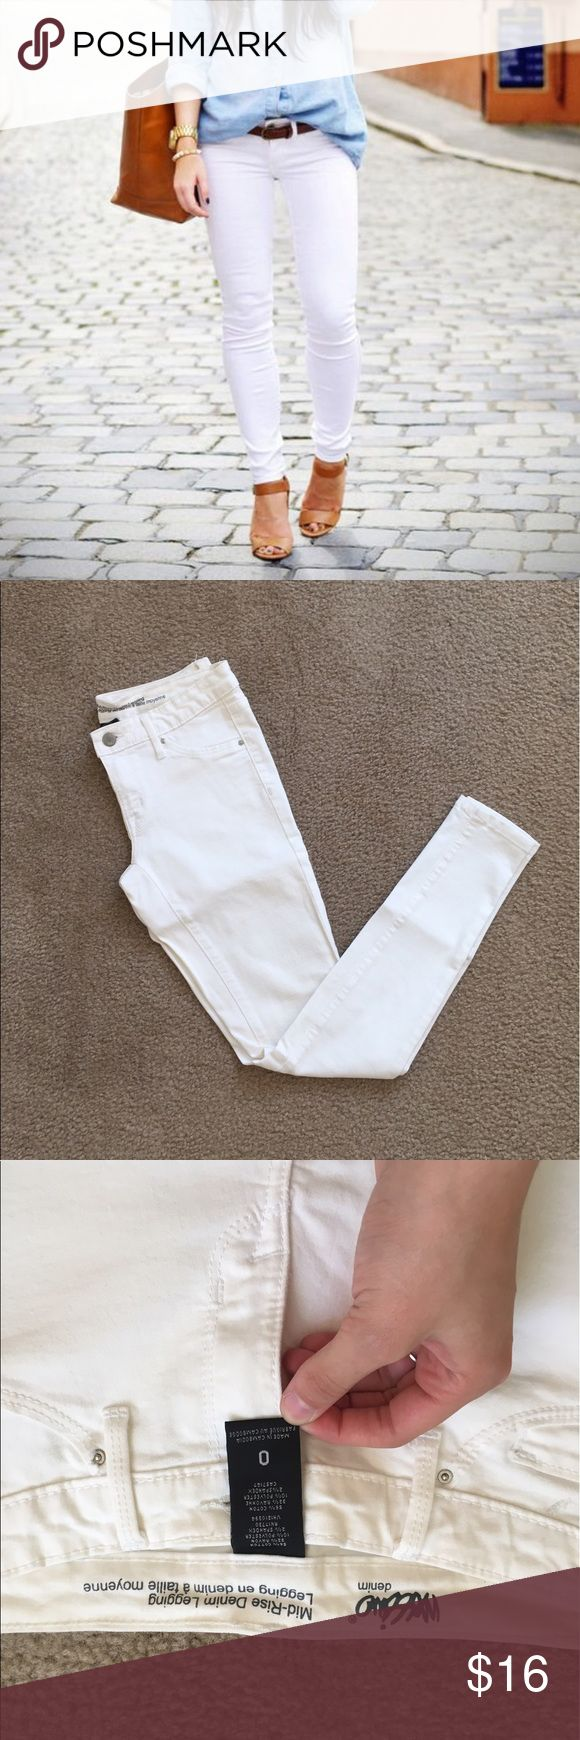 White Skinny Jeans NWOT Size 0 white NWOT jeggings from target. Mid rise, no flaws. These pants are the perfect staple for a bright summer outfit; pair these with a bright tank top and strappy sandals for an adorable outfit. Open to offers; bundles discounted! I ship daily - excluding Sundays and holidays - and I store items in a smoke free, pet free environment. Mossimo Supply Co. Jeans Skinny